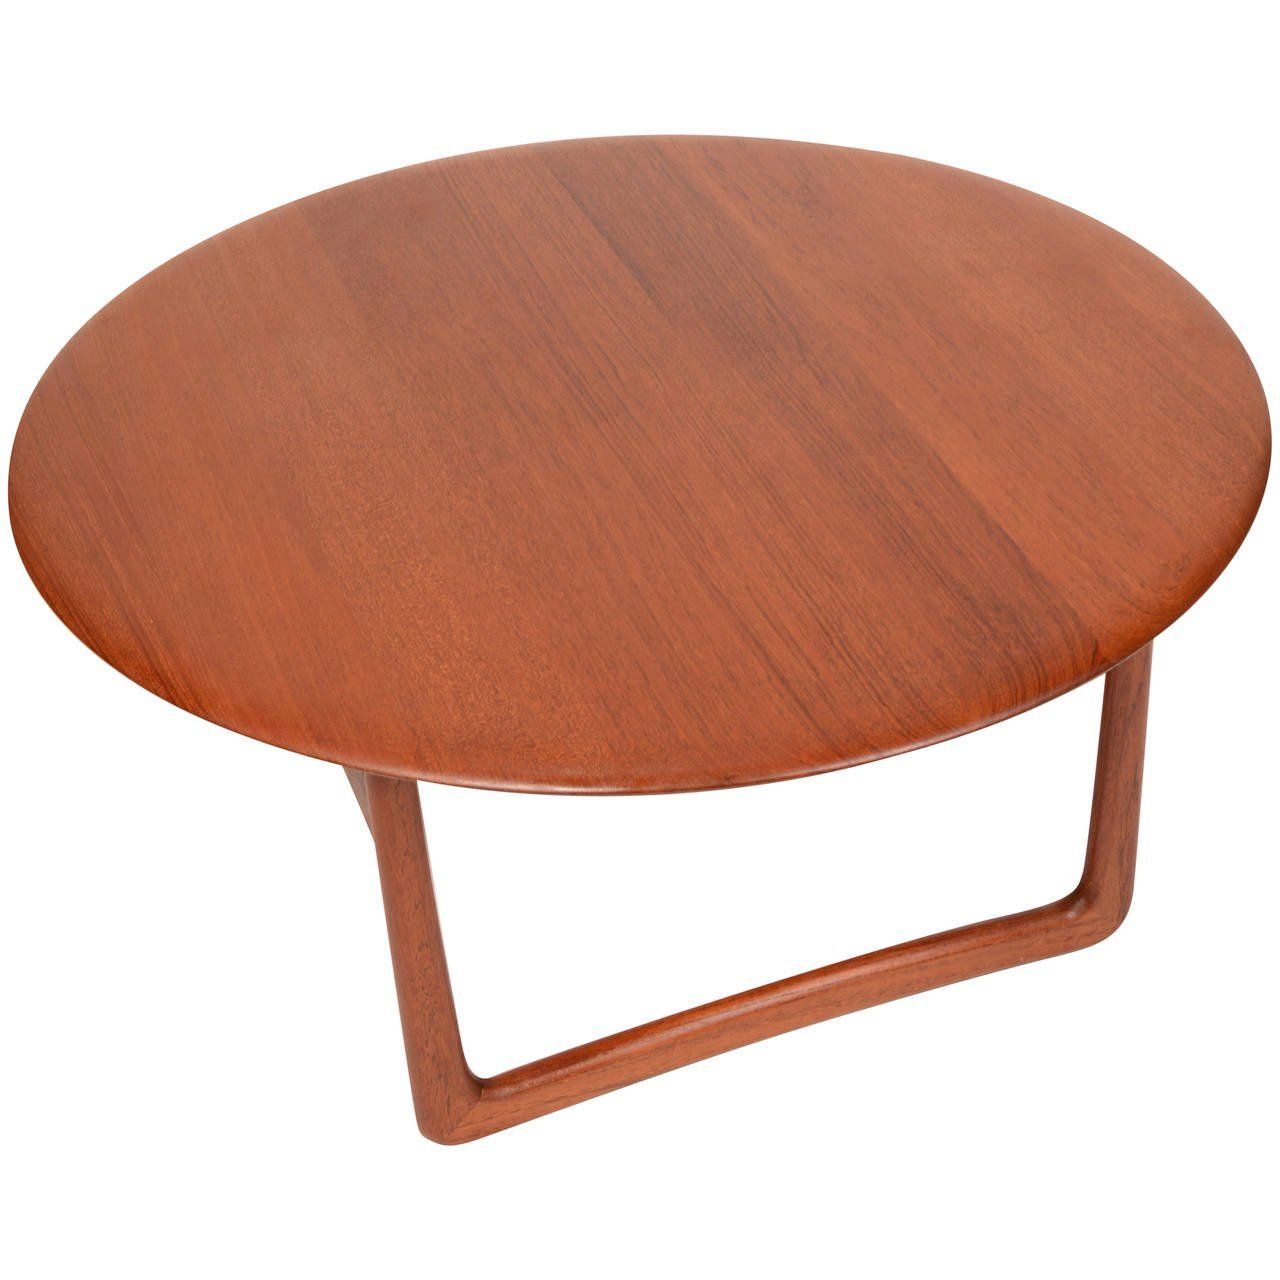 Solid Teak Danish Modern Round Coffee Table By Povl Dinesen For France And Son Round Coffee Table Modern Coffee Table Table [ 1280 x 1280 Pixel ]